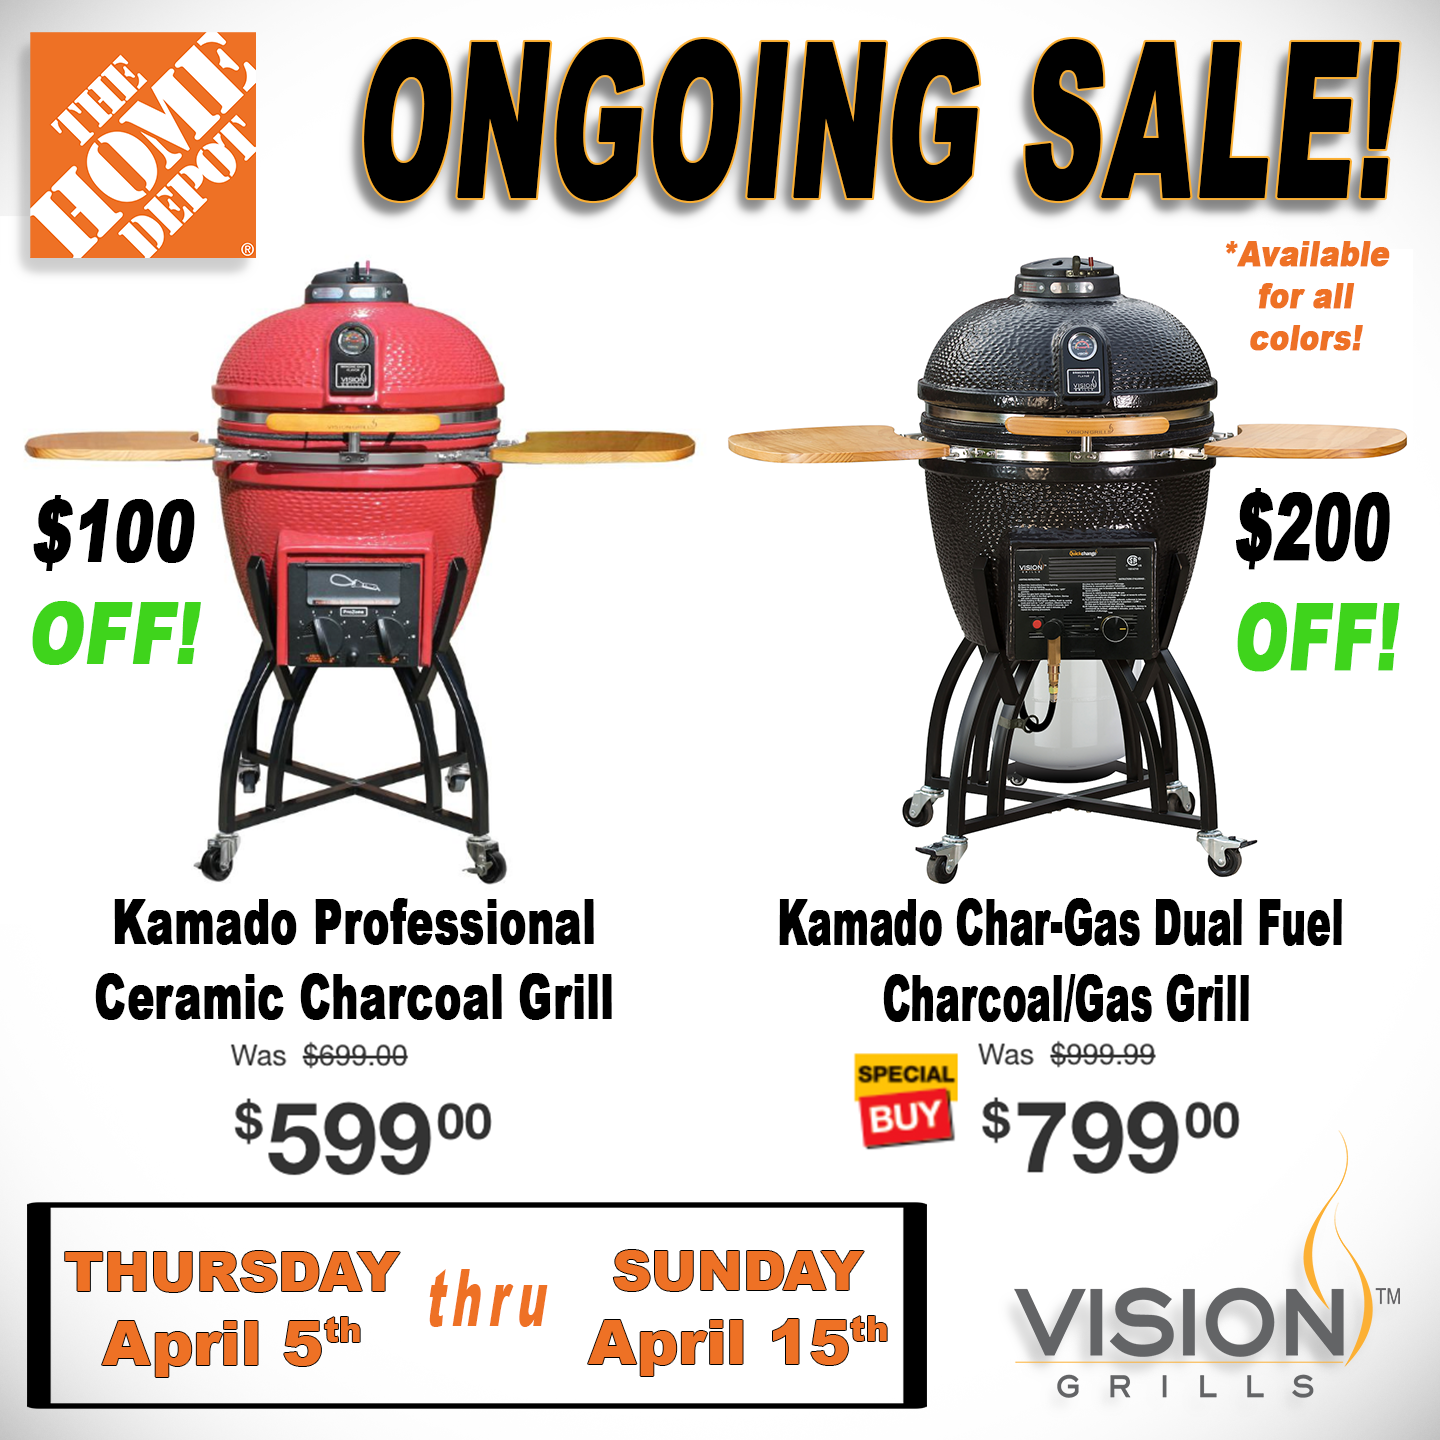 The Home Depot Sale 100 Off Professional S Series Kamado Grills And 200 Off Char Gas Kamado Grill The Sale Ends S Customer Service Week Kamado Grill Kamado